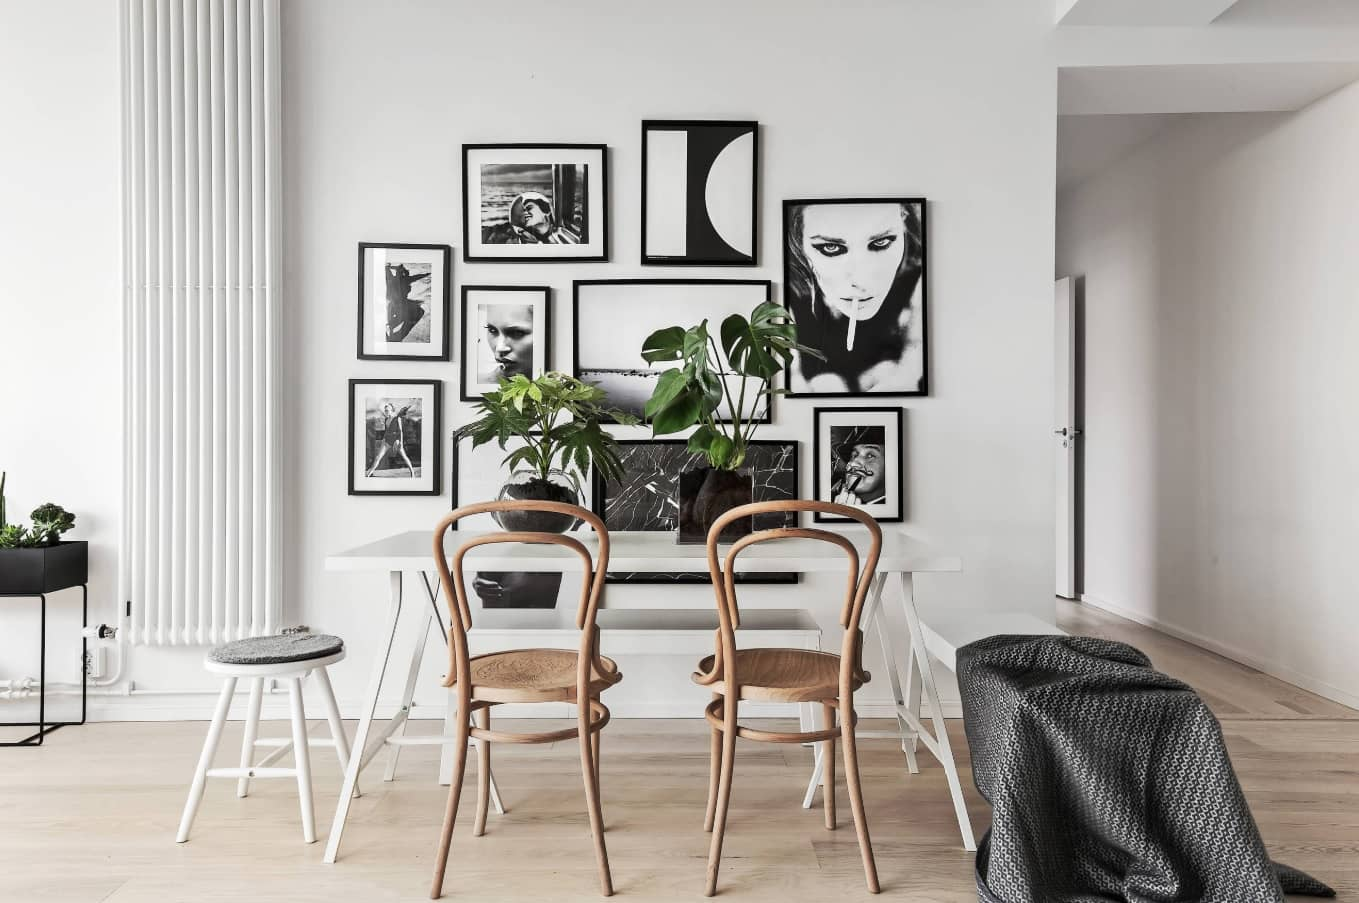 Nordic Interior Design Examples in Real Homes Photos. Black and white pictures and plants as the decoration for dining zone